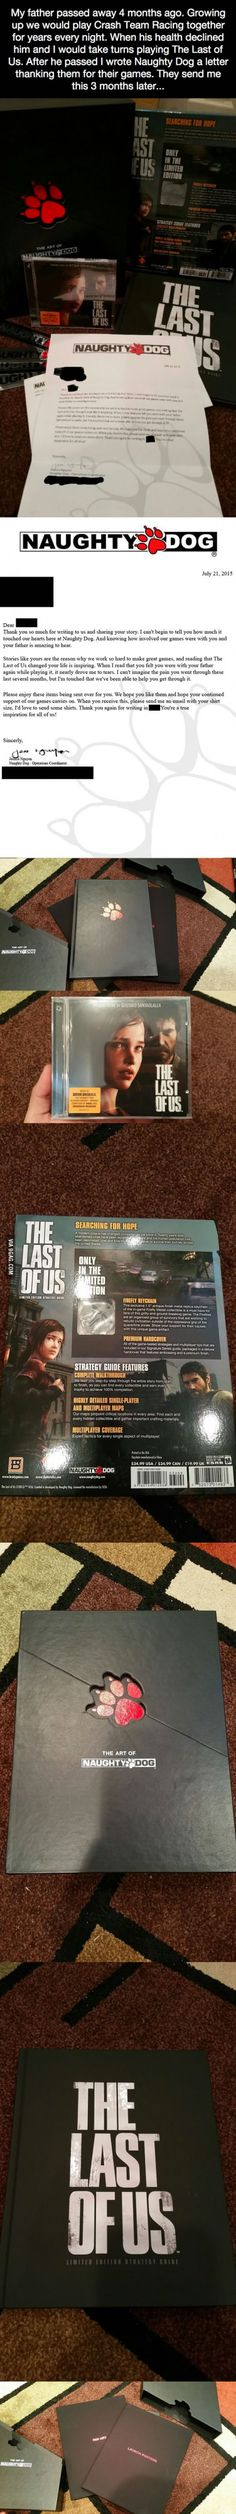 Naughty Dog Reaches out to Fan Who Shared The Last of Us with Passed Father